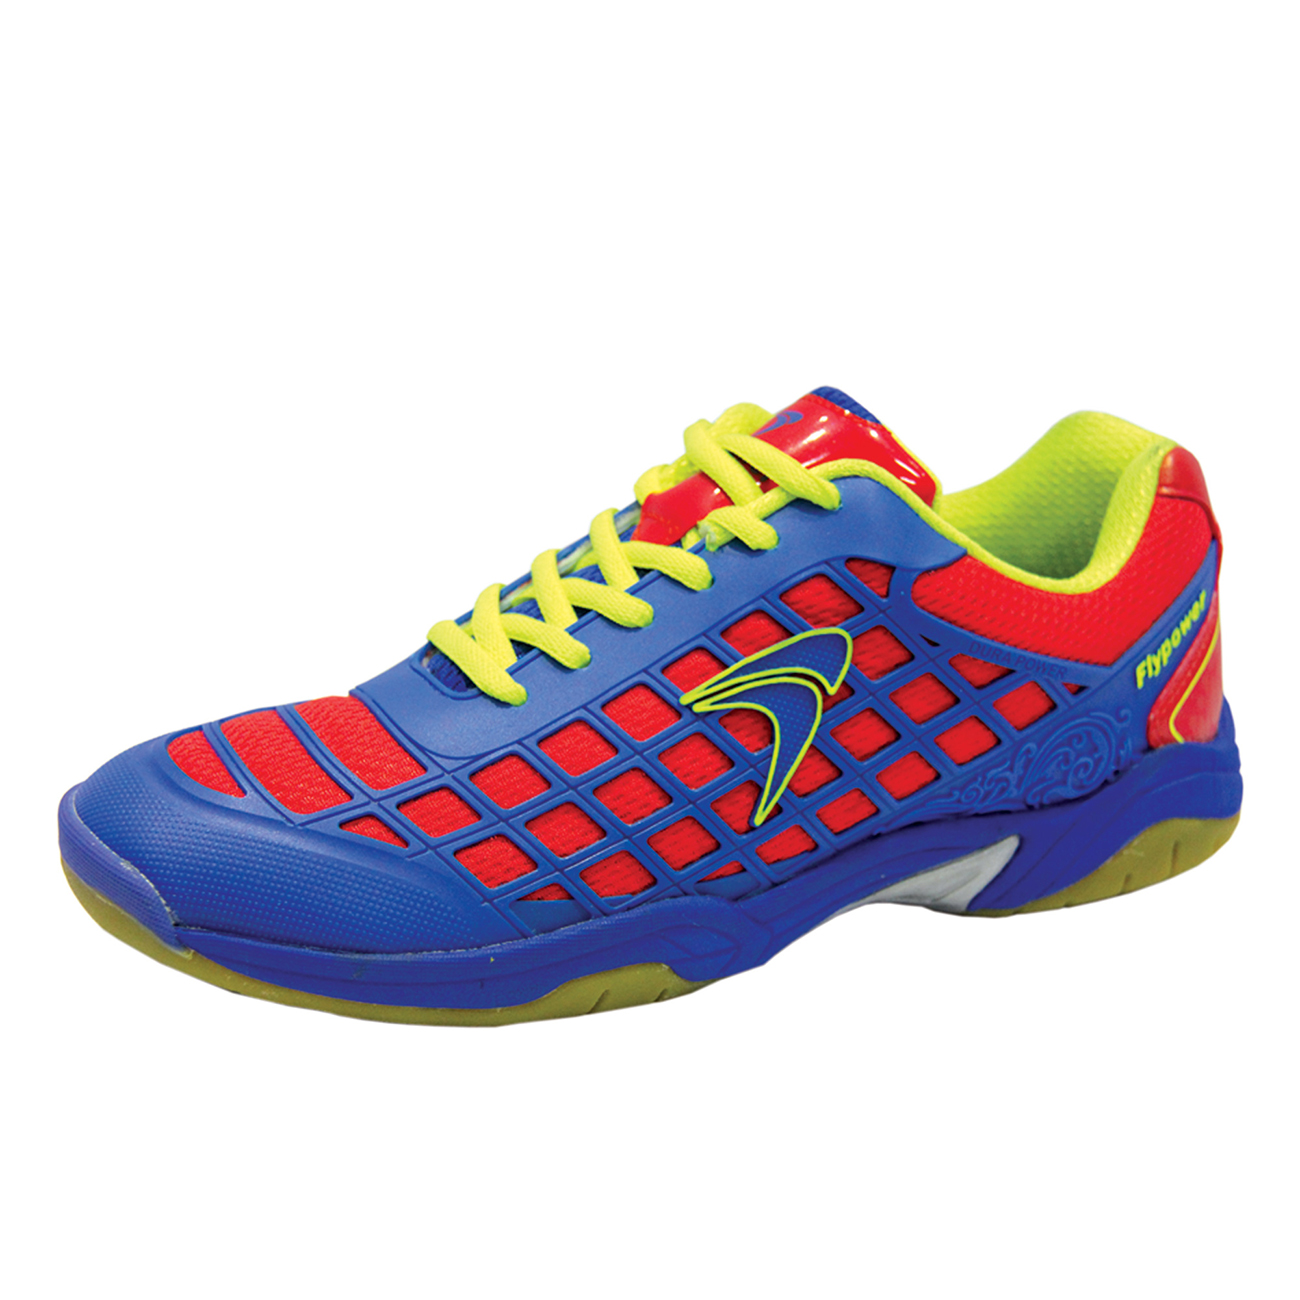 Jual Flypower Dieng Sepatu Badminton - Blue Red Citrus Blue EUR 40 flypower 7fa0c8c847